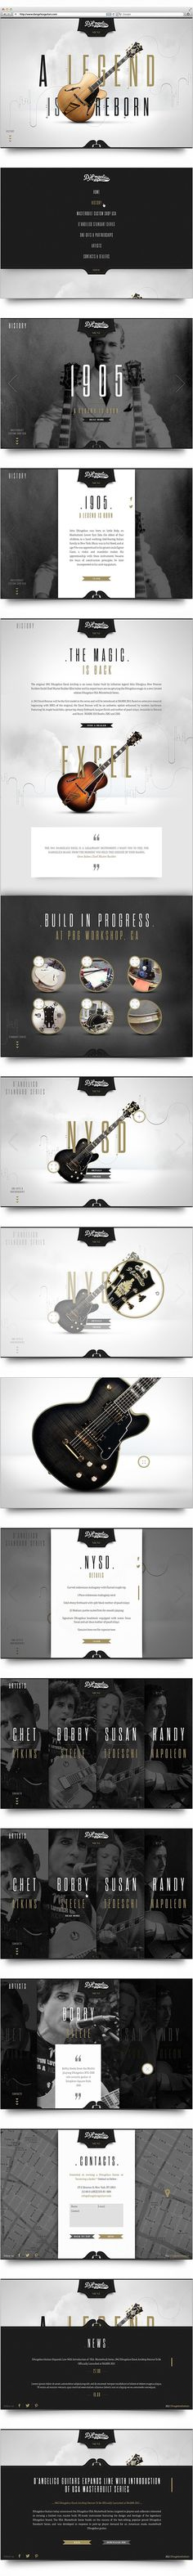 D'Angelico Guitars on Behance